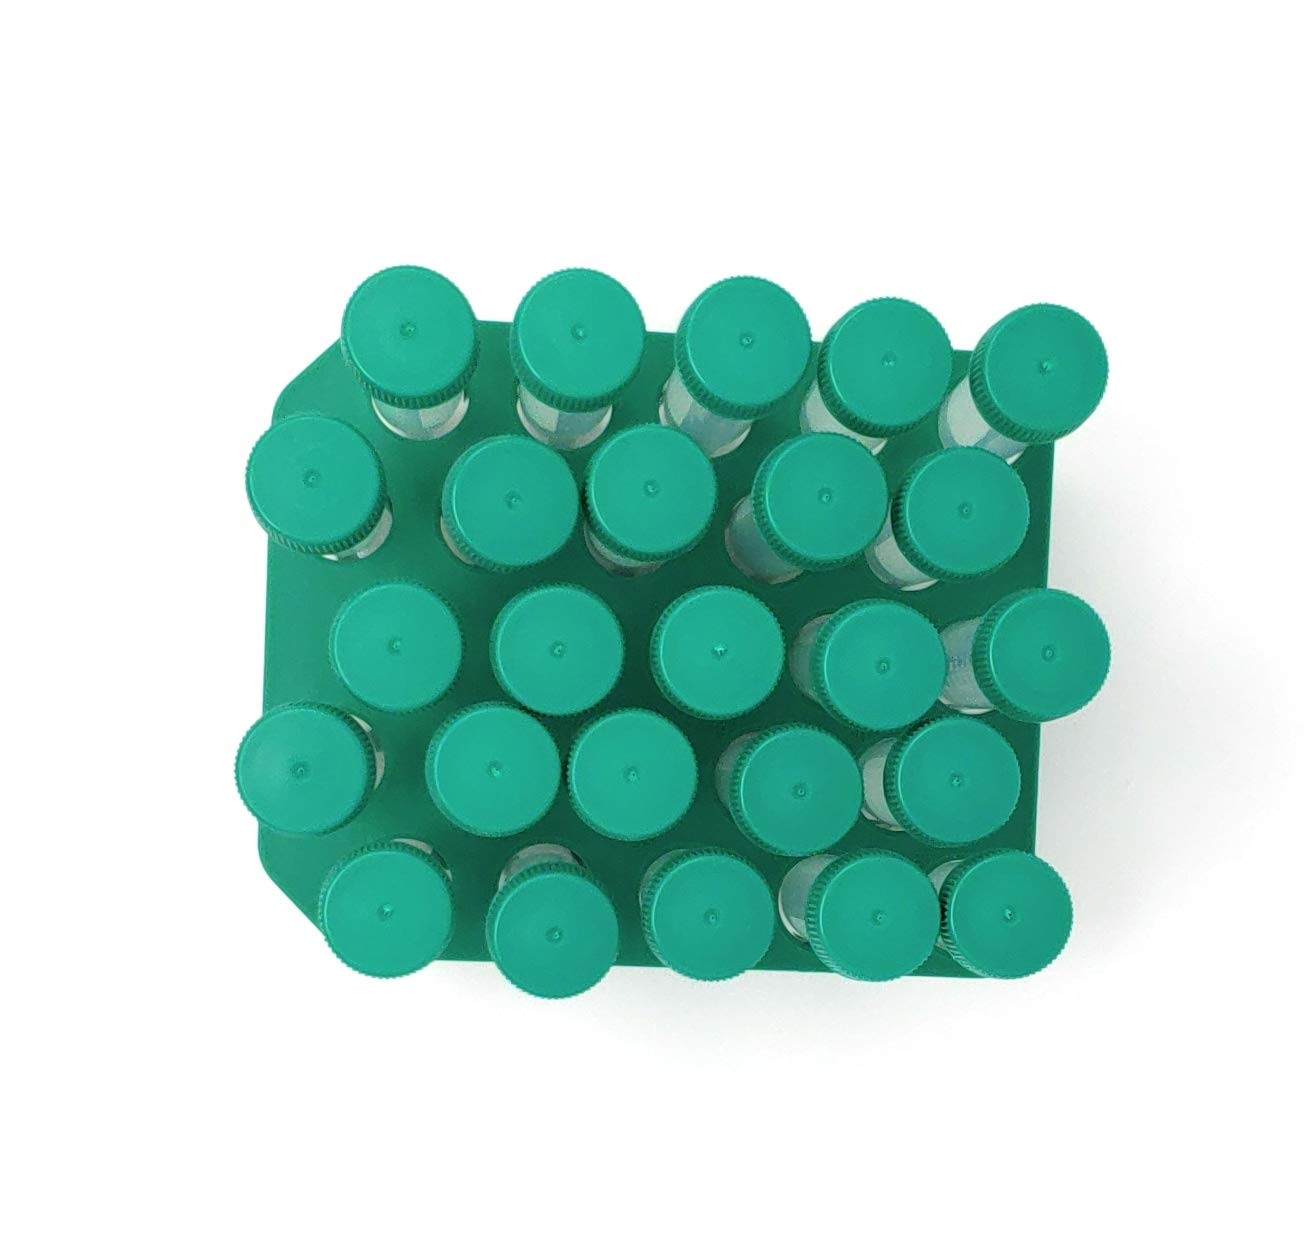 SPL 15 ml Conical Centrifuge Tubes Sterilized with PP Racks, (Rack of 25) Non - pyrogenic, Non - cytotoxic, DNase/RNase - free, Human DNA - free by SPL Life Sciences (Image #3)